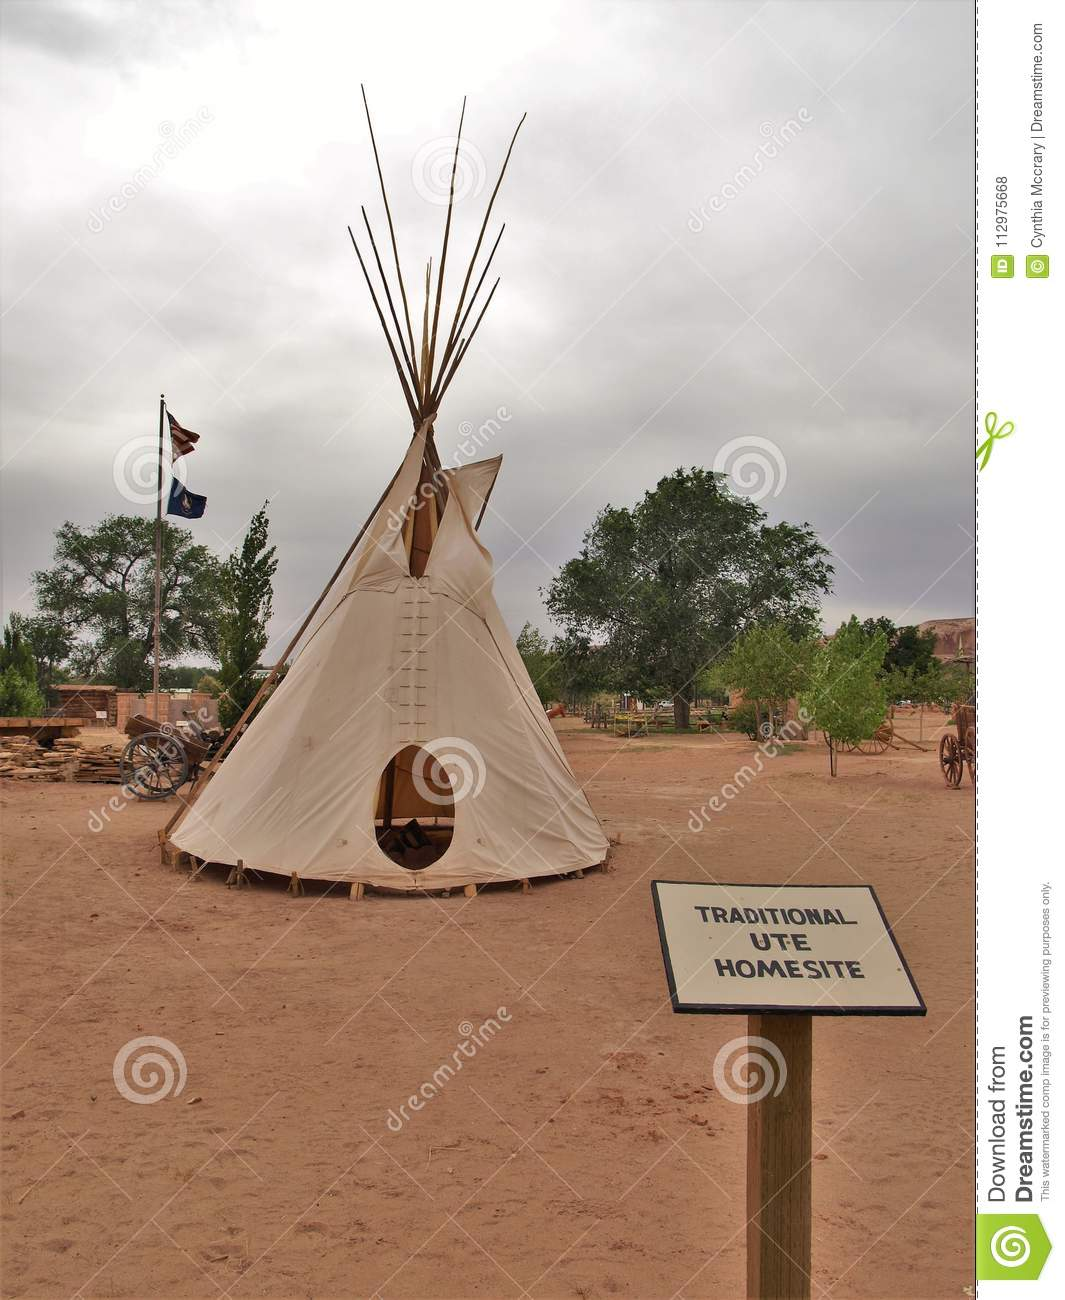 Teepee at Bluff Fort Historic Site in Bluff, Utah